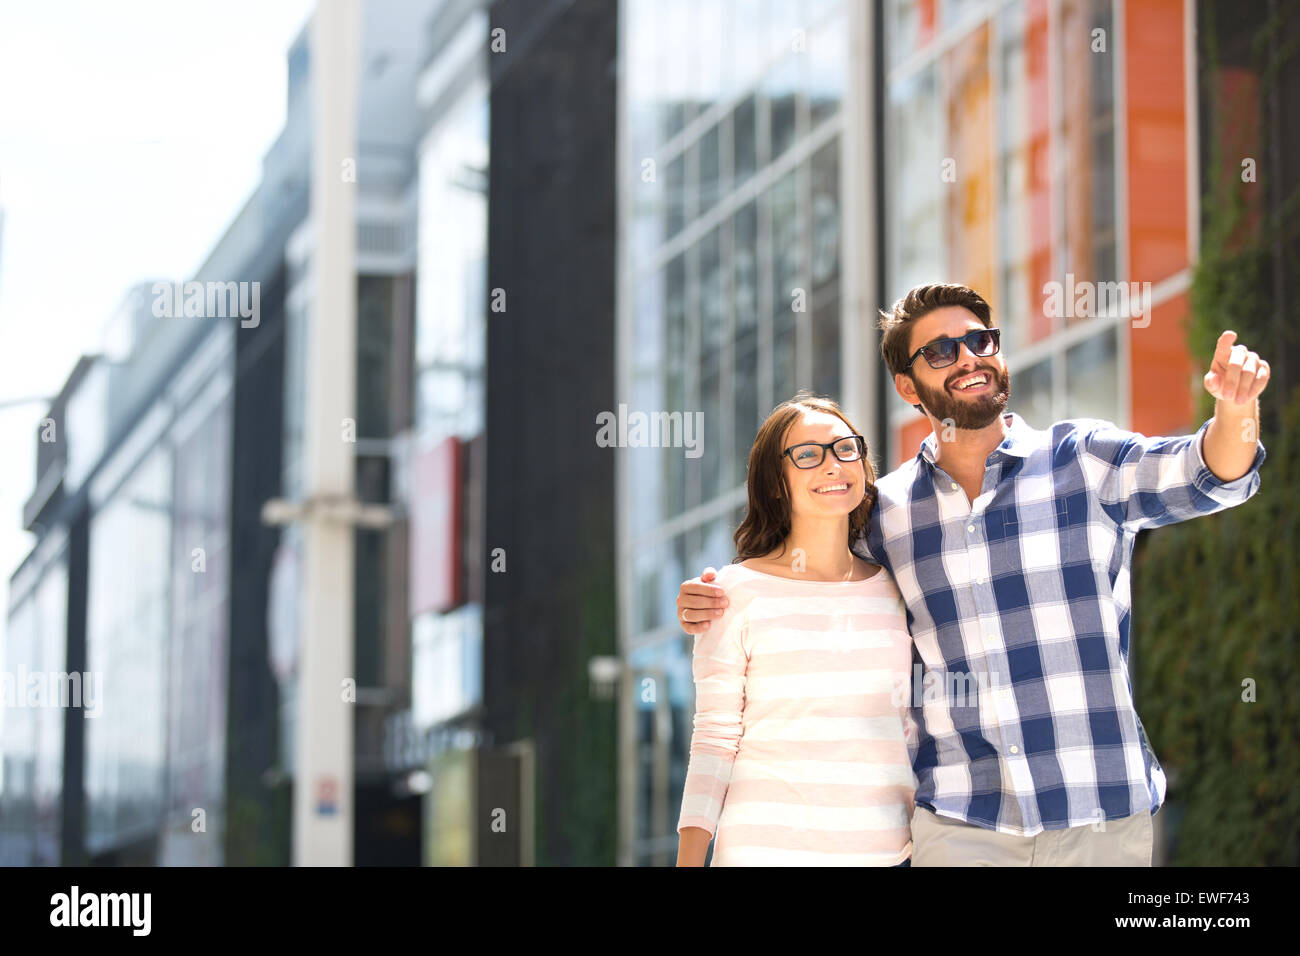 Happy man showing something to woman outside building - Stock Image